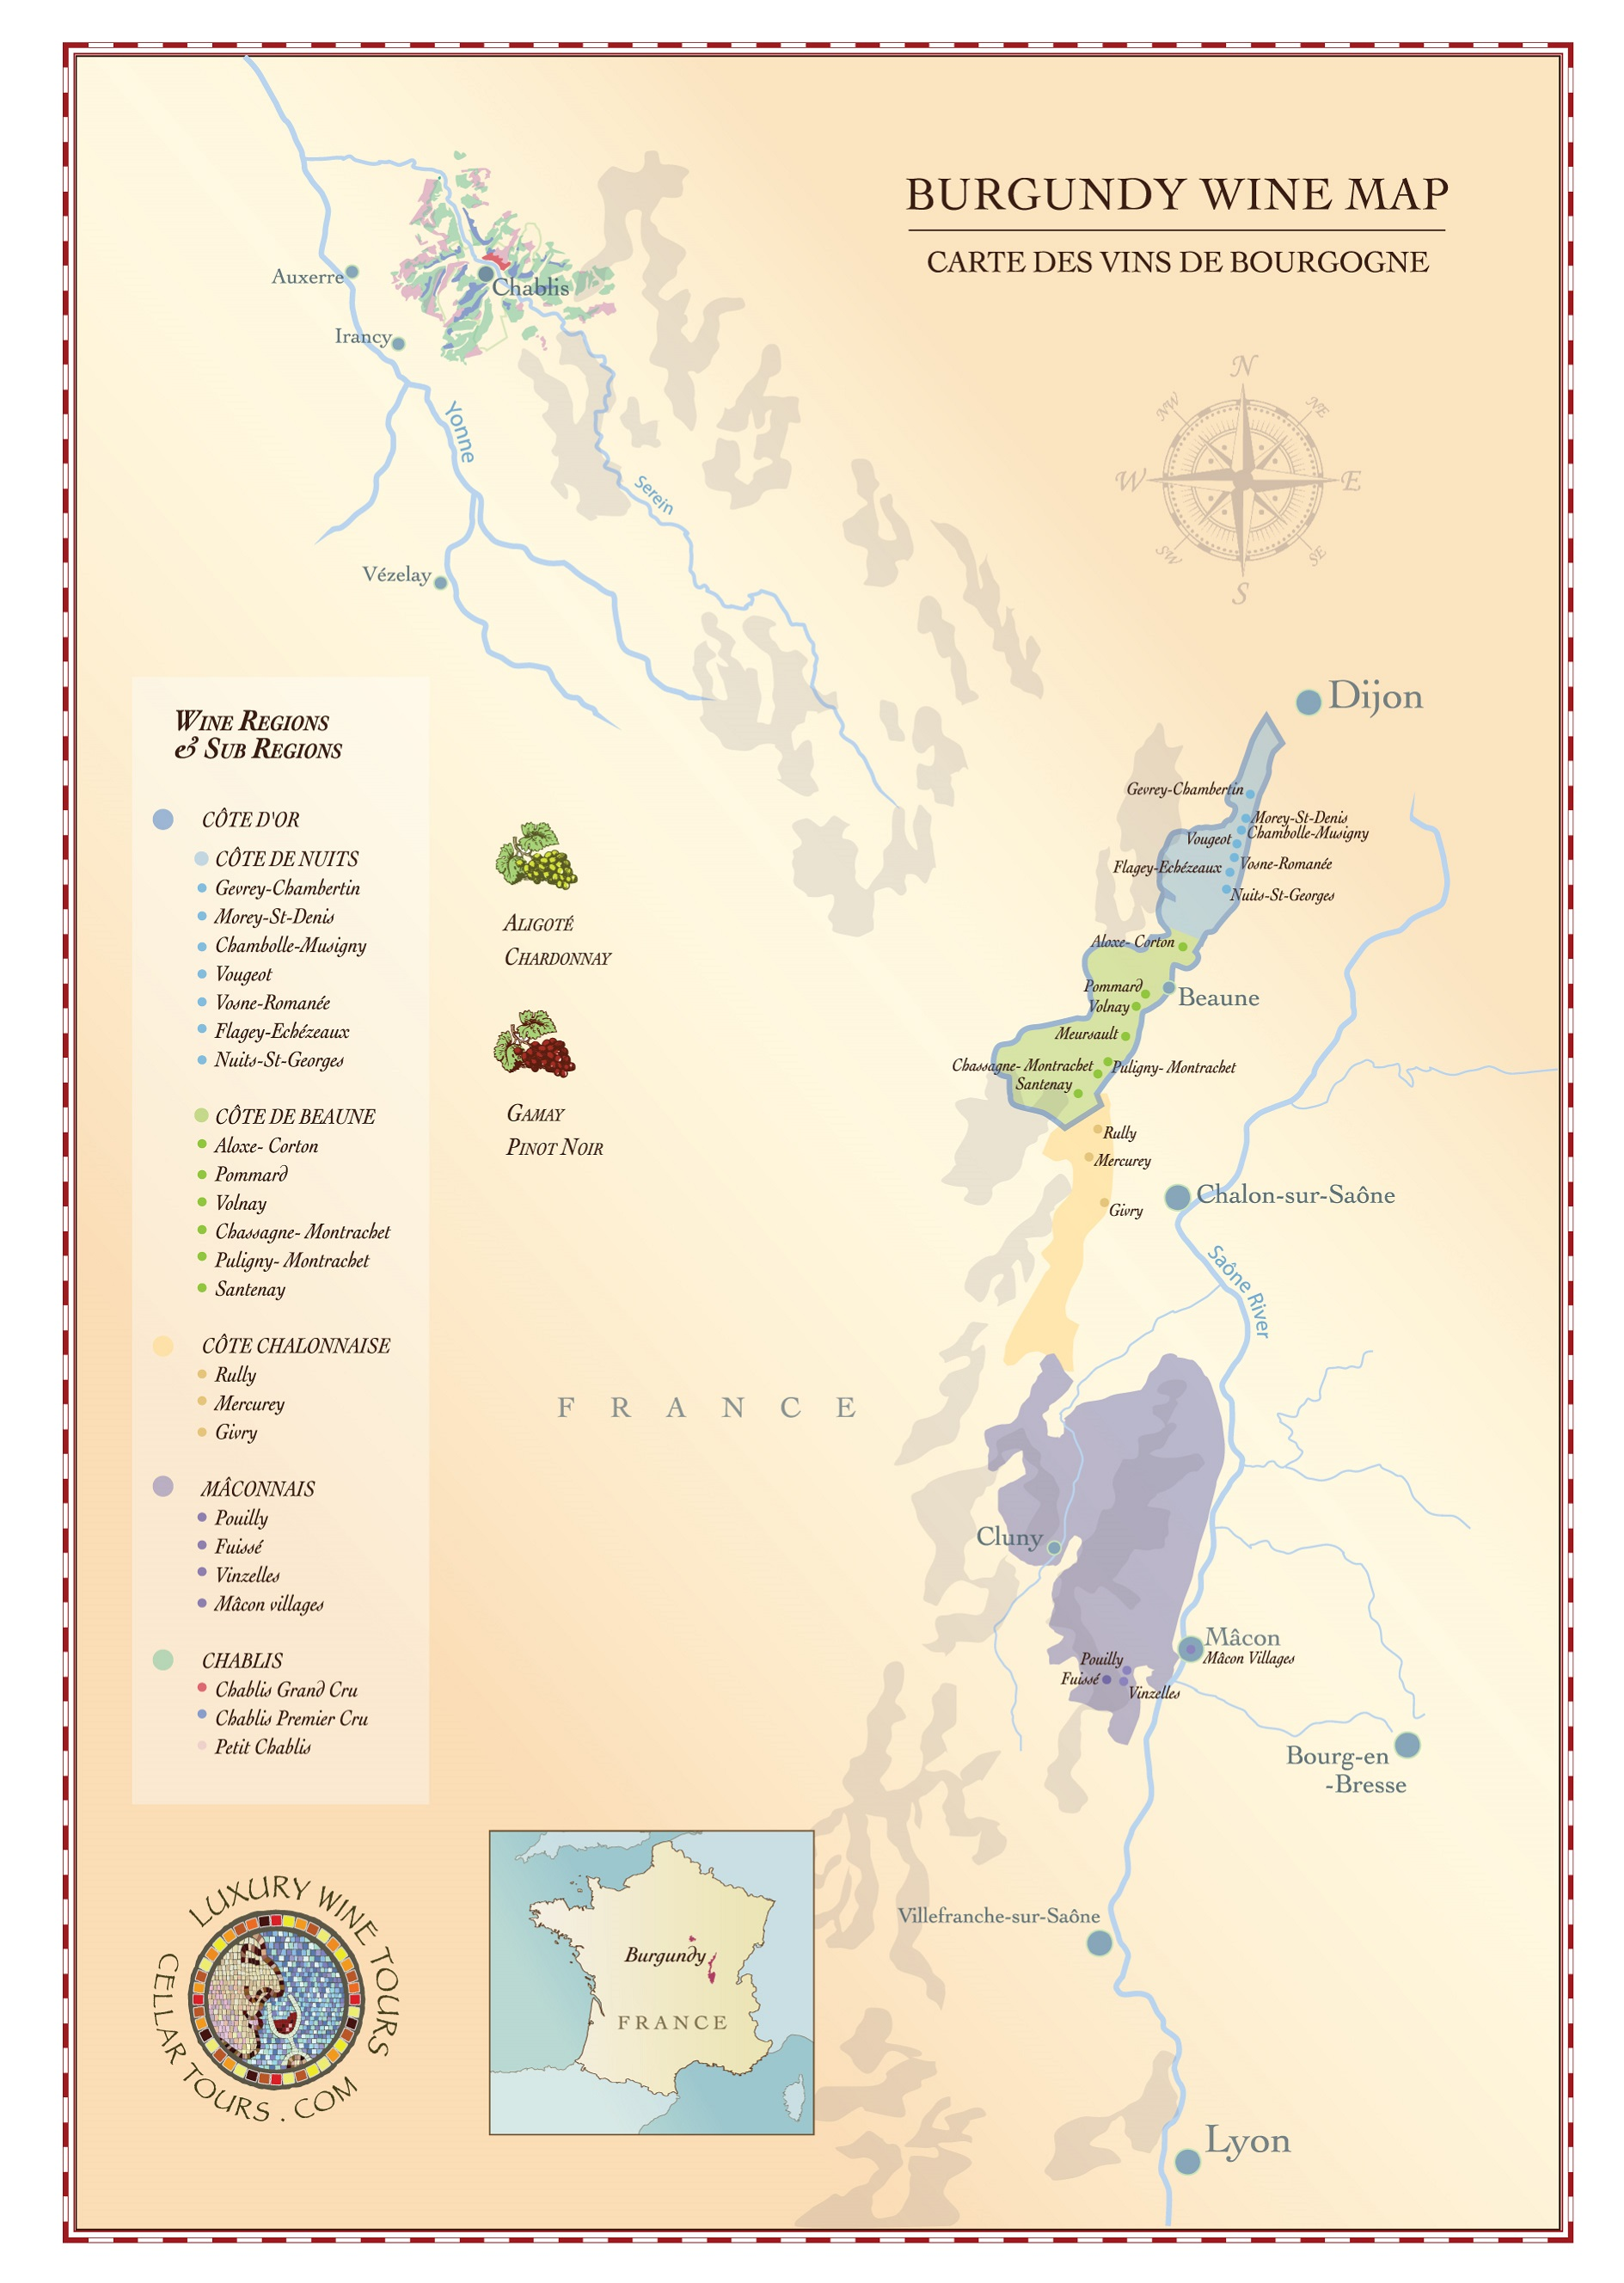 wine-maps - burgundy-wine-region-map